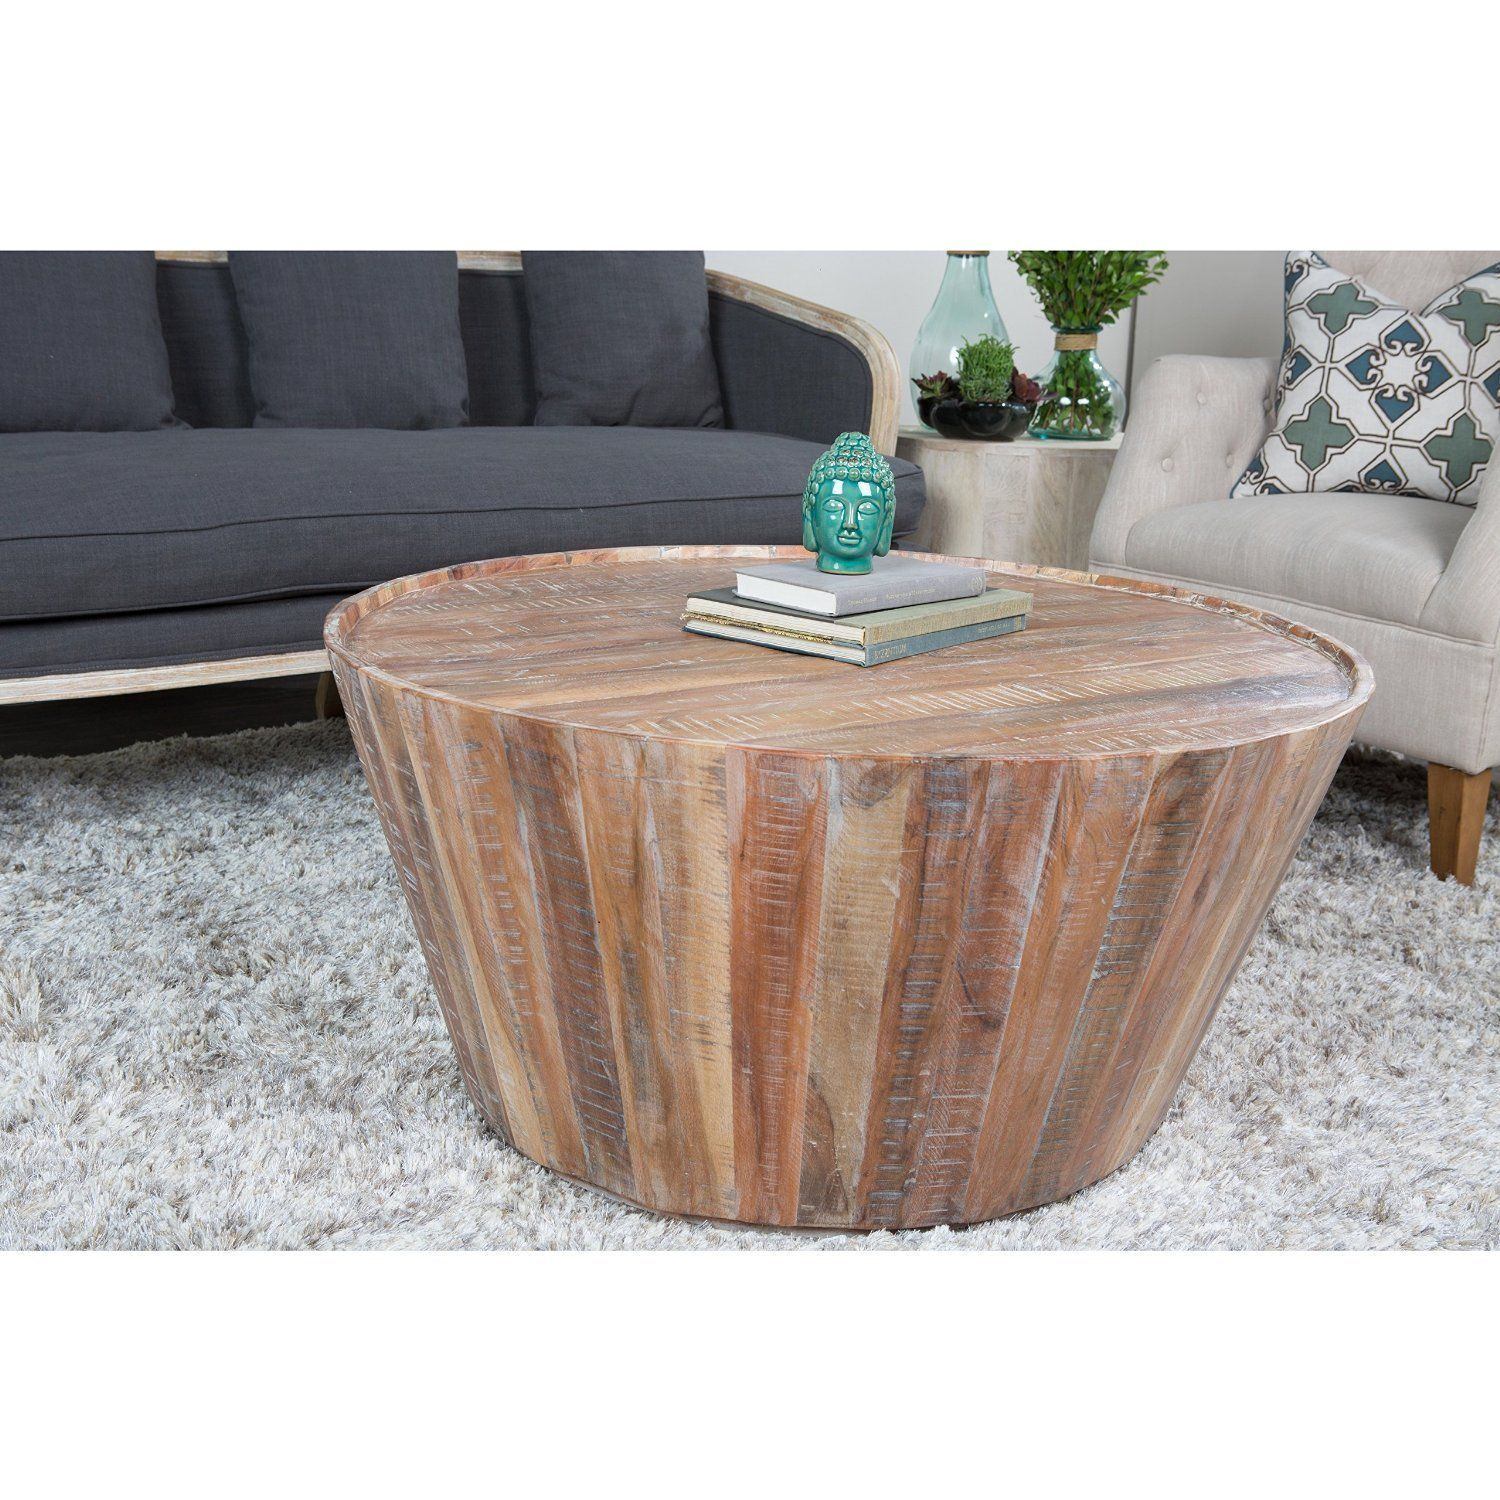 AmazonSmile Contemporary Rustic Distressed Wood 38 inch Round